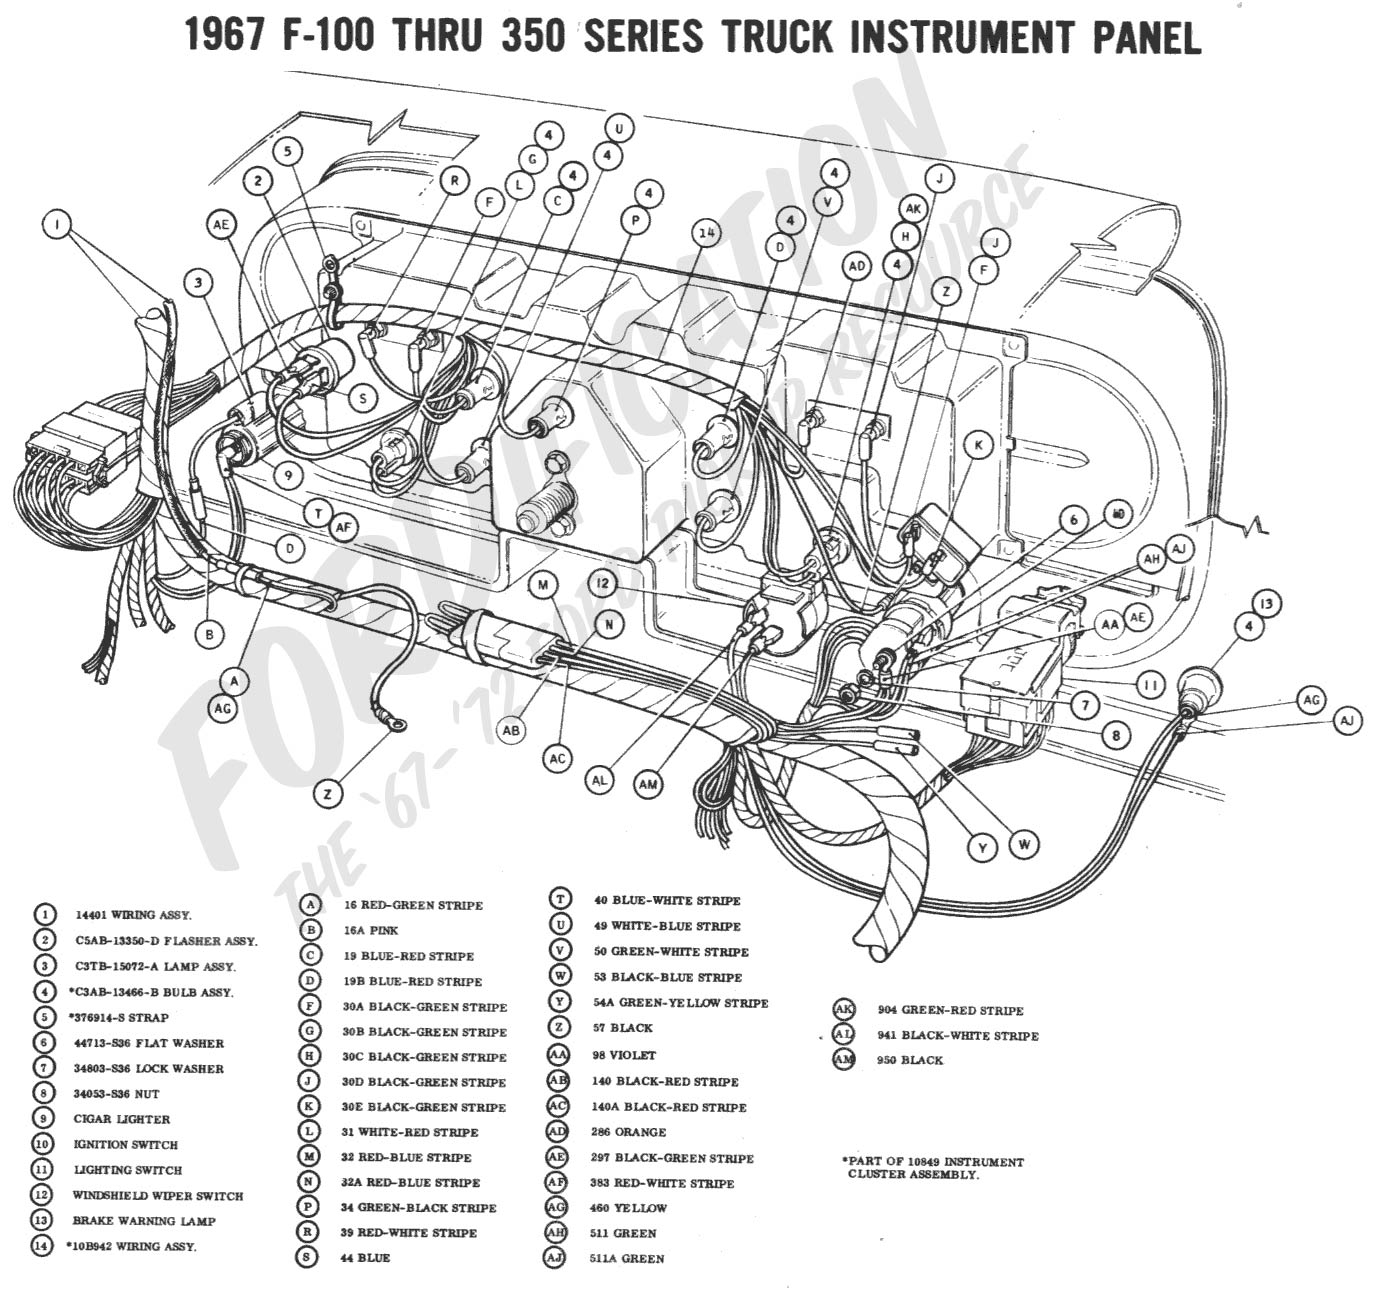 wiring 1967instrumentpanel ford truck technical drawings and schematics section h wiring 1967 ford f100 wiring harness at edmiracle.co